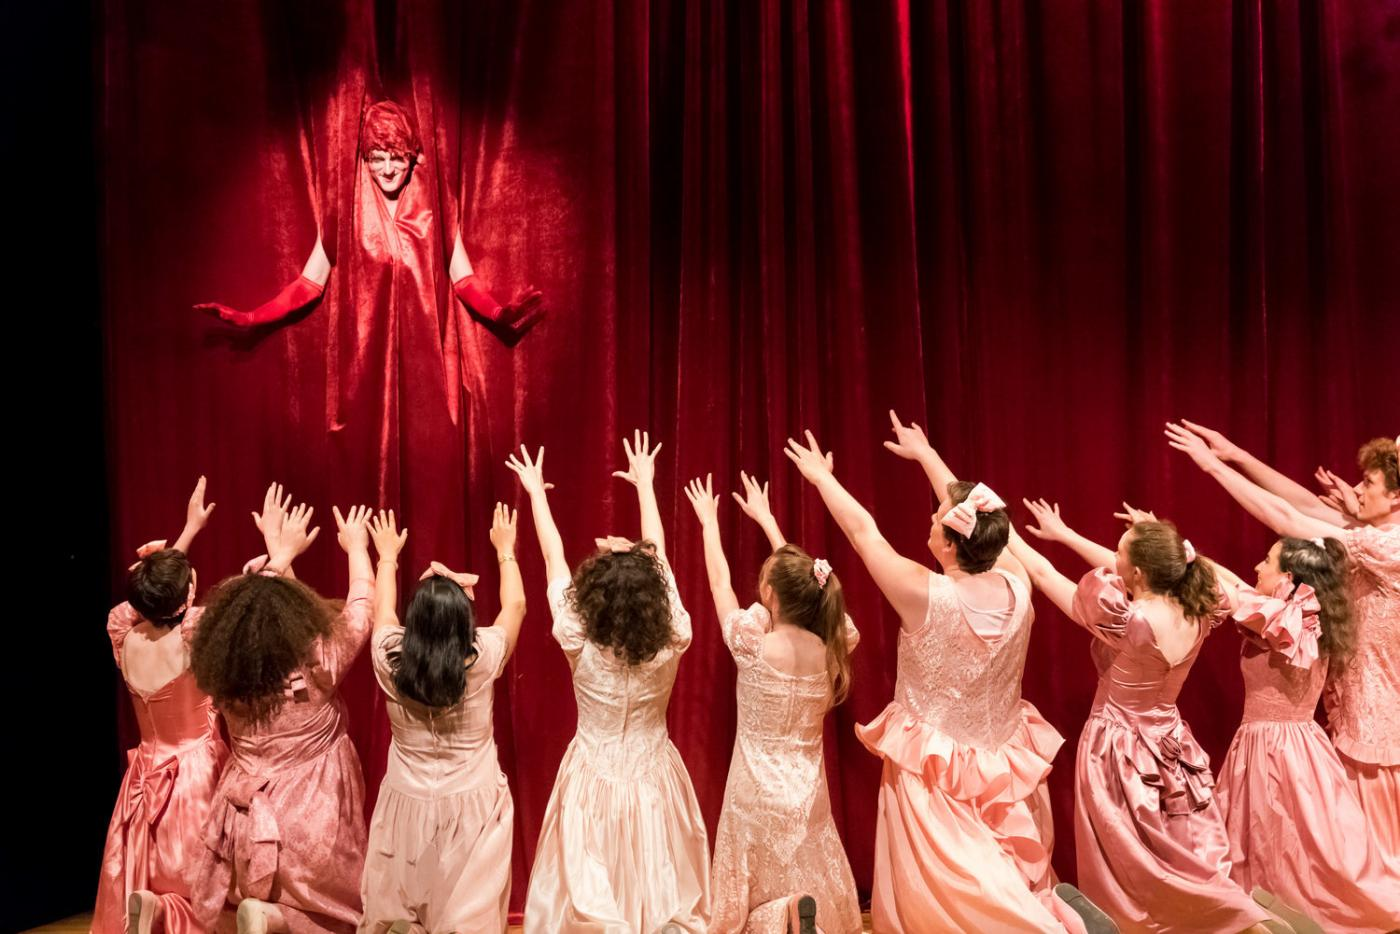 From a red curtain, a man in drag is spotlight. Before the curtain, a crowd of men and women in pink dresses hold their arms up.